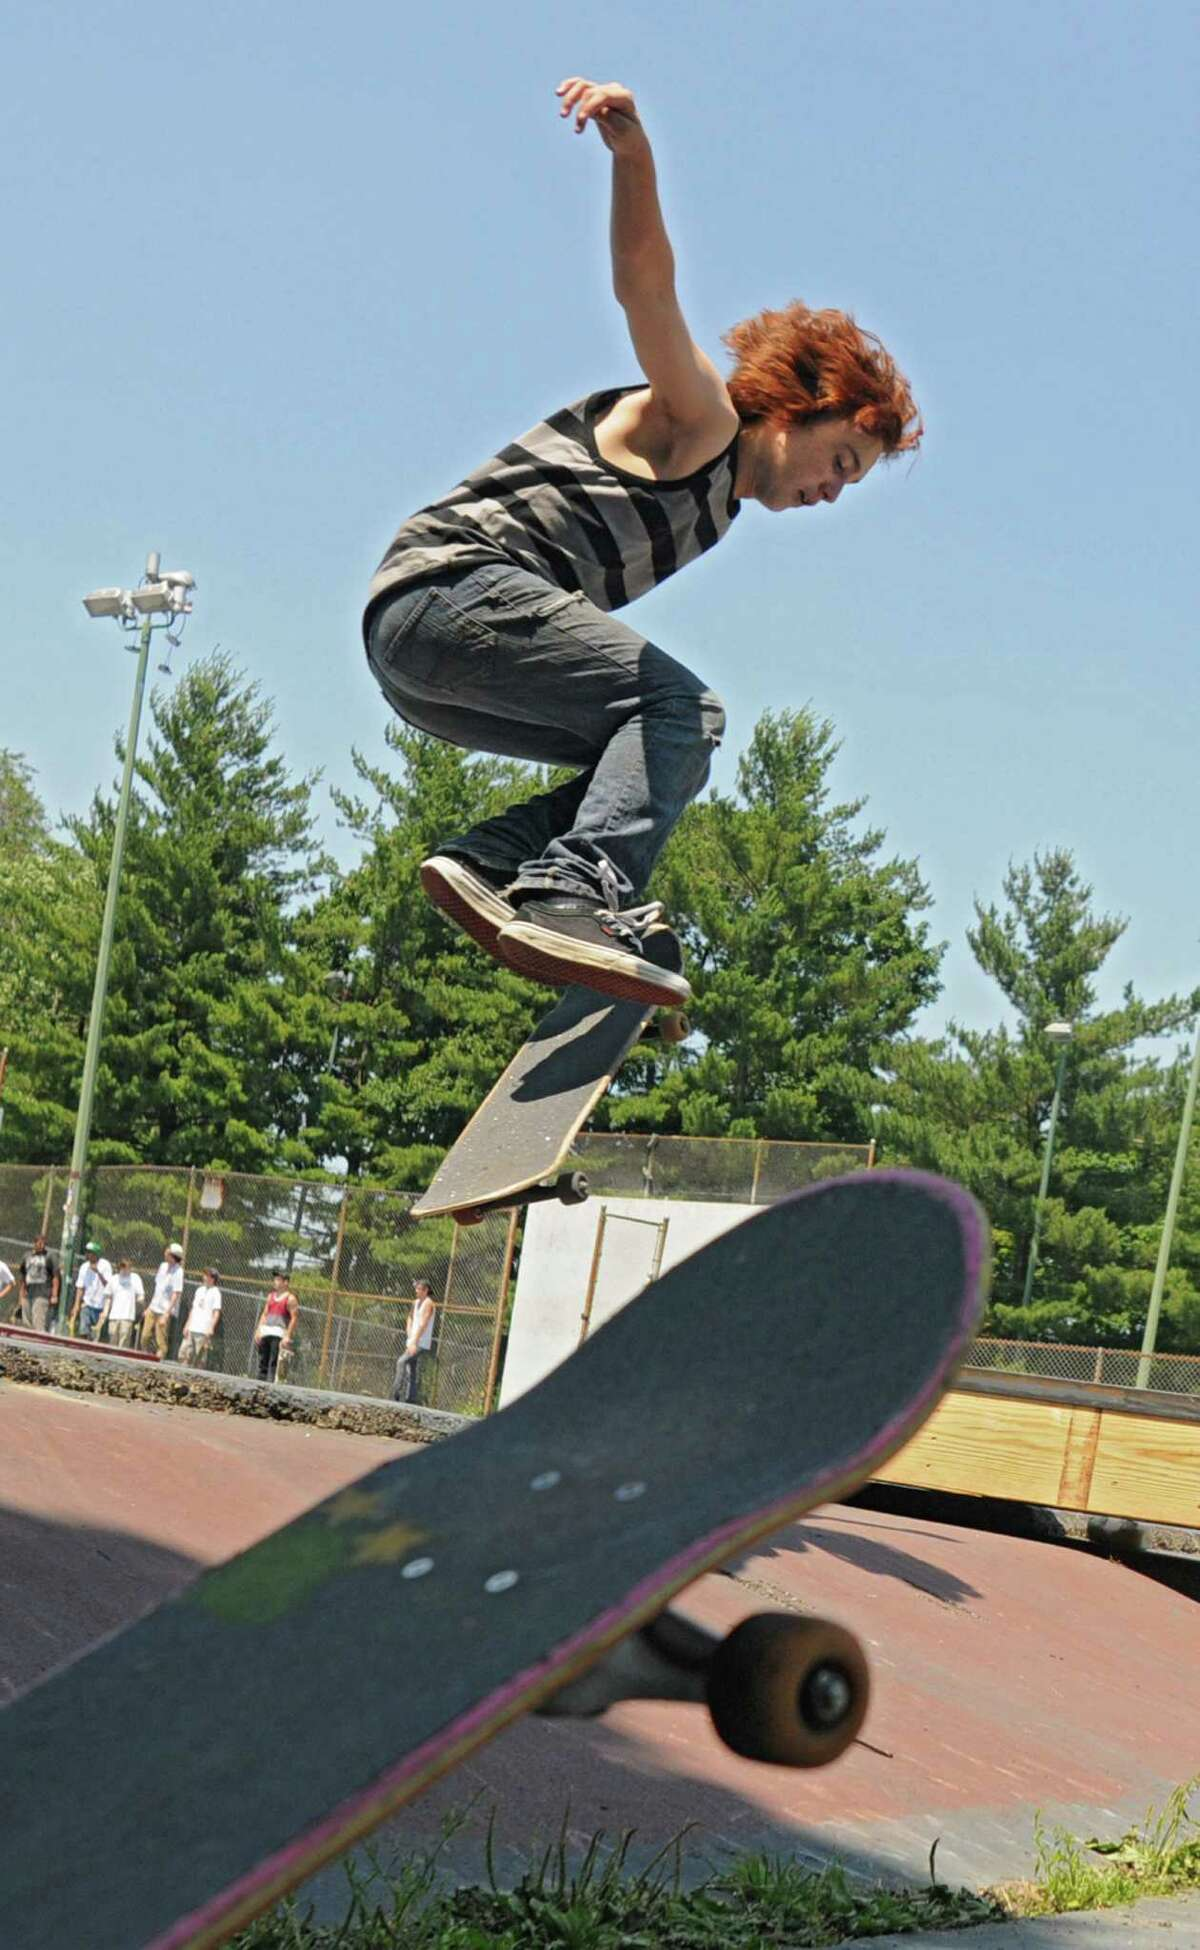 Mateo Gilchrist, 15, of Albany perfoms a trick on his skateboard during a contest in Washington Park Thursday, June 21, 2012 in Albany, N.Y. Thursday was national skateboard day. (Lori Van Buren / Times Union)